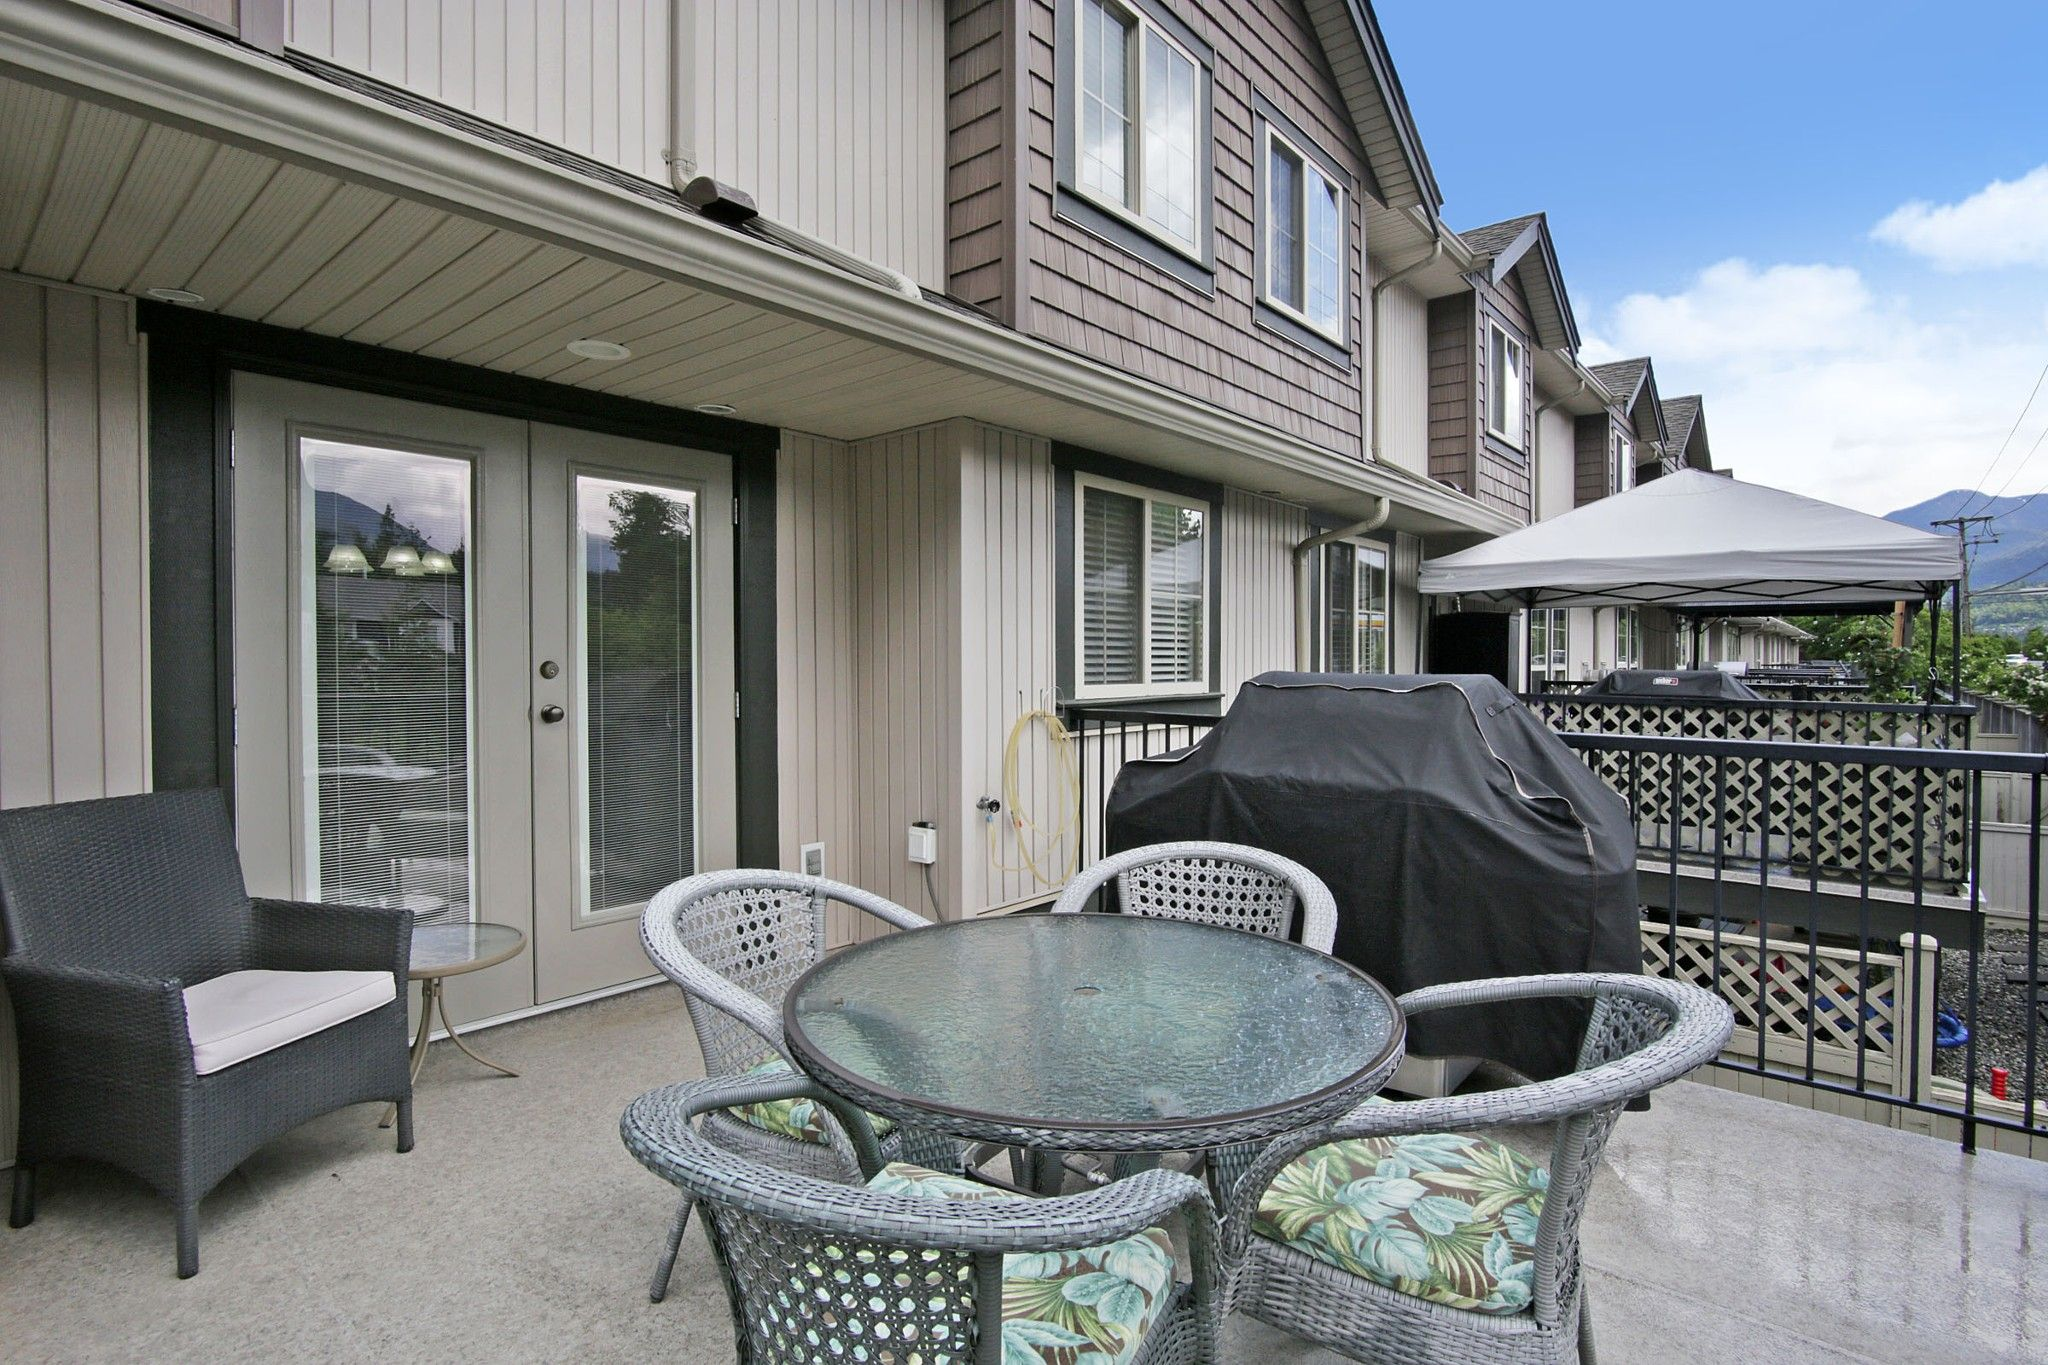 """Photo 25: Photos: 25 6450 BLACKWOOD Lane in Chilliwack: Sardis West Vedder Rd Townhouse for sale in """"THE MAPLES"""" (Sardis)  : MLS®# R2581381"""